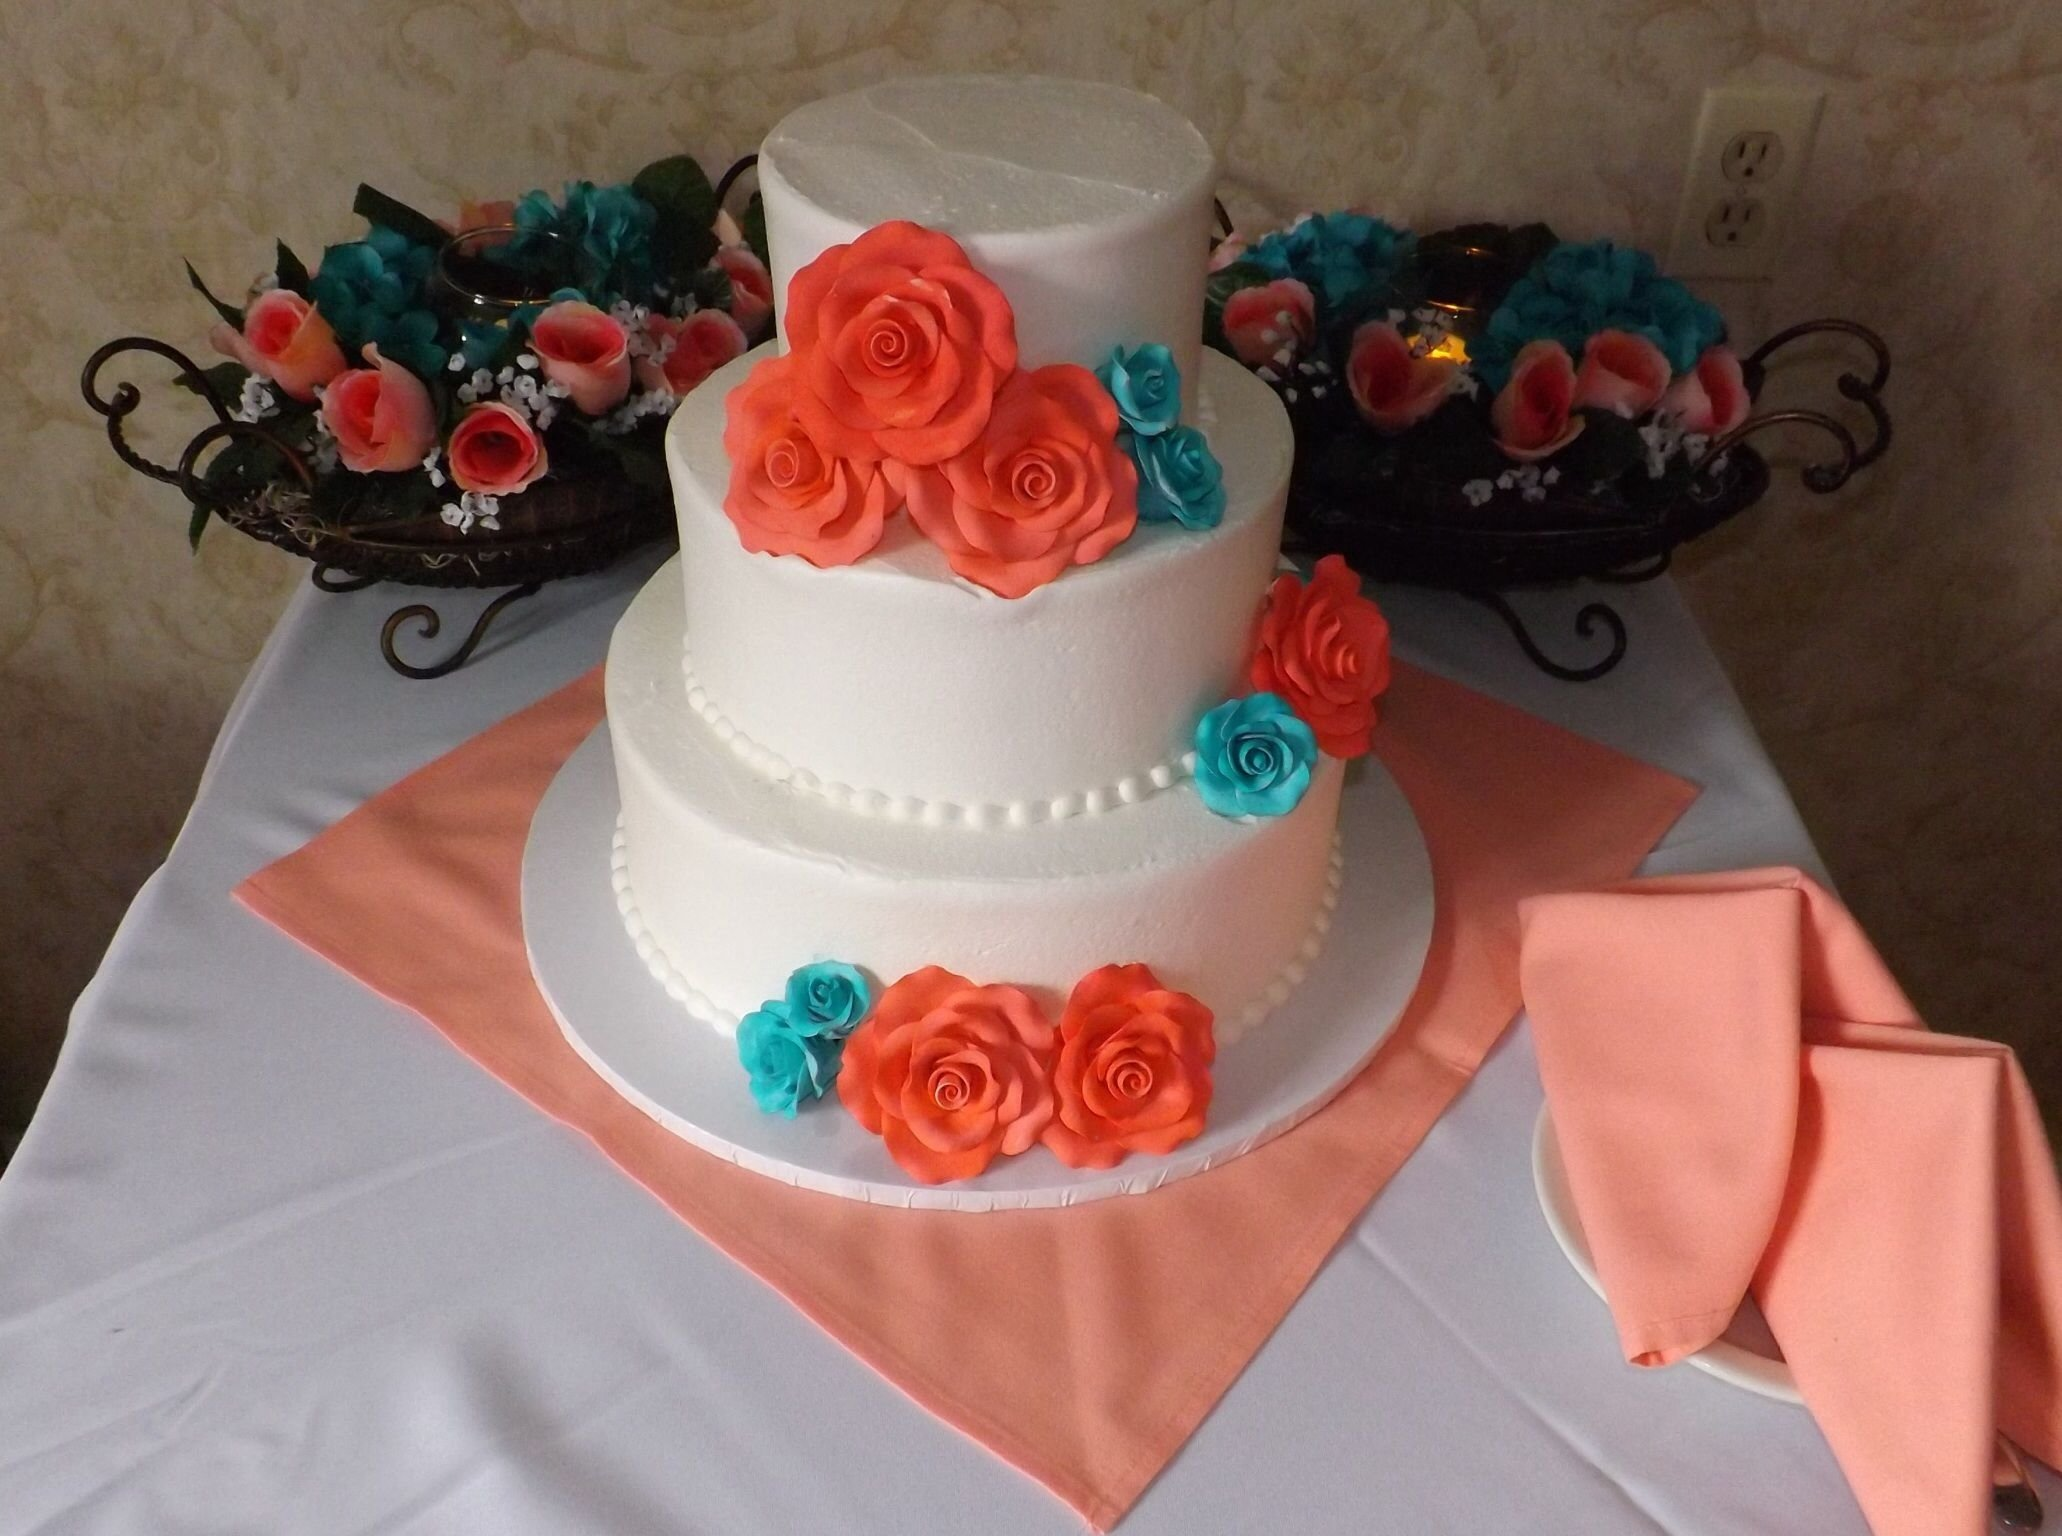 10 Trendy Coral And Teal Wedding Ideas coral and teal wedding cake coral and teal weddings pinterest 2020